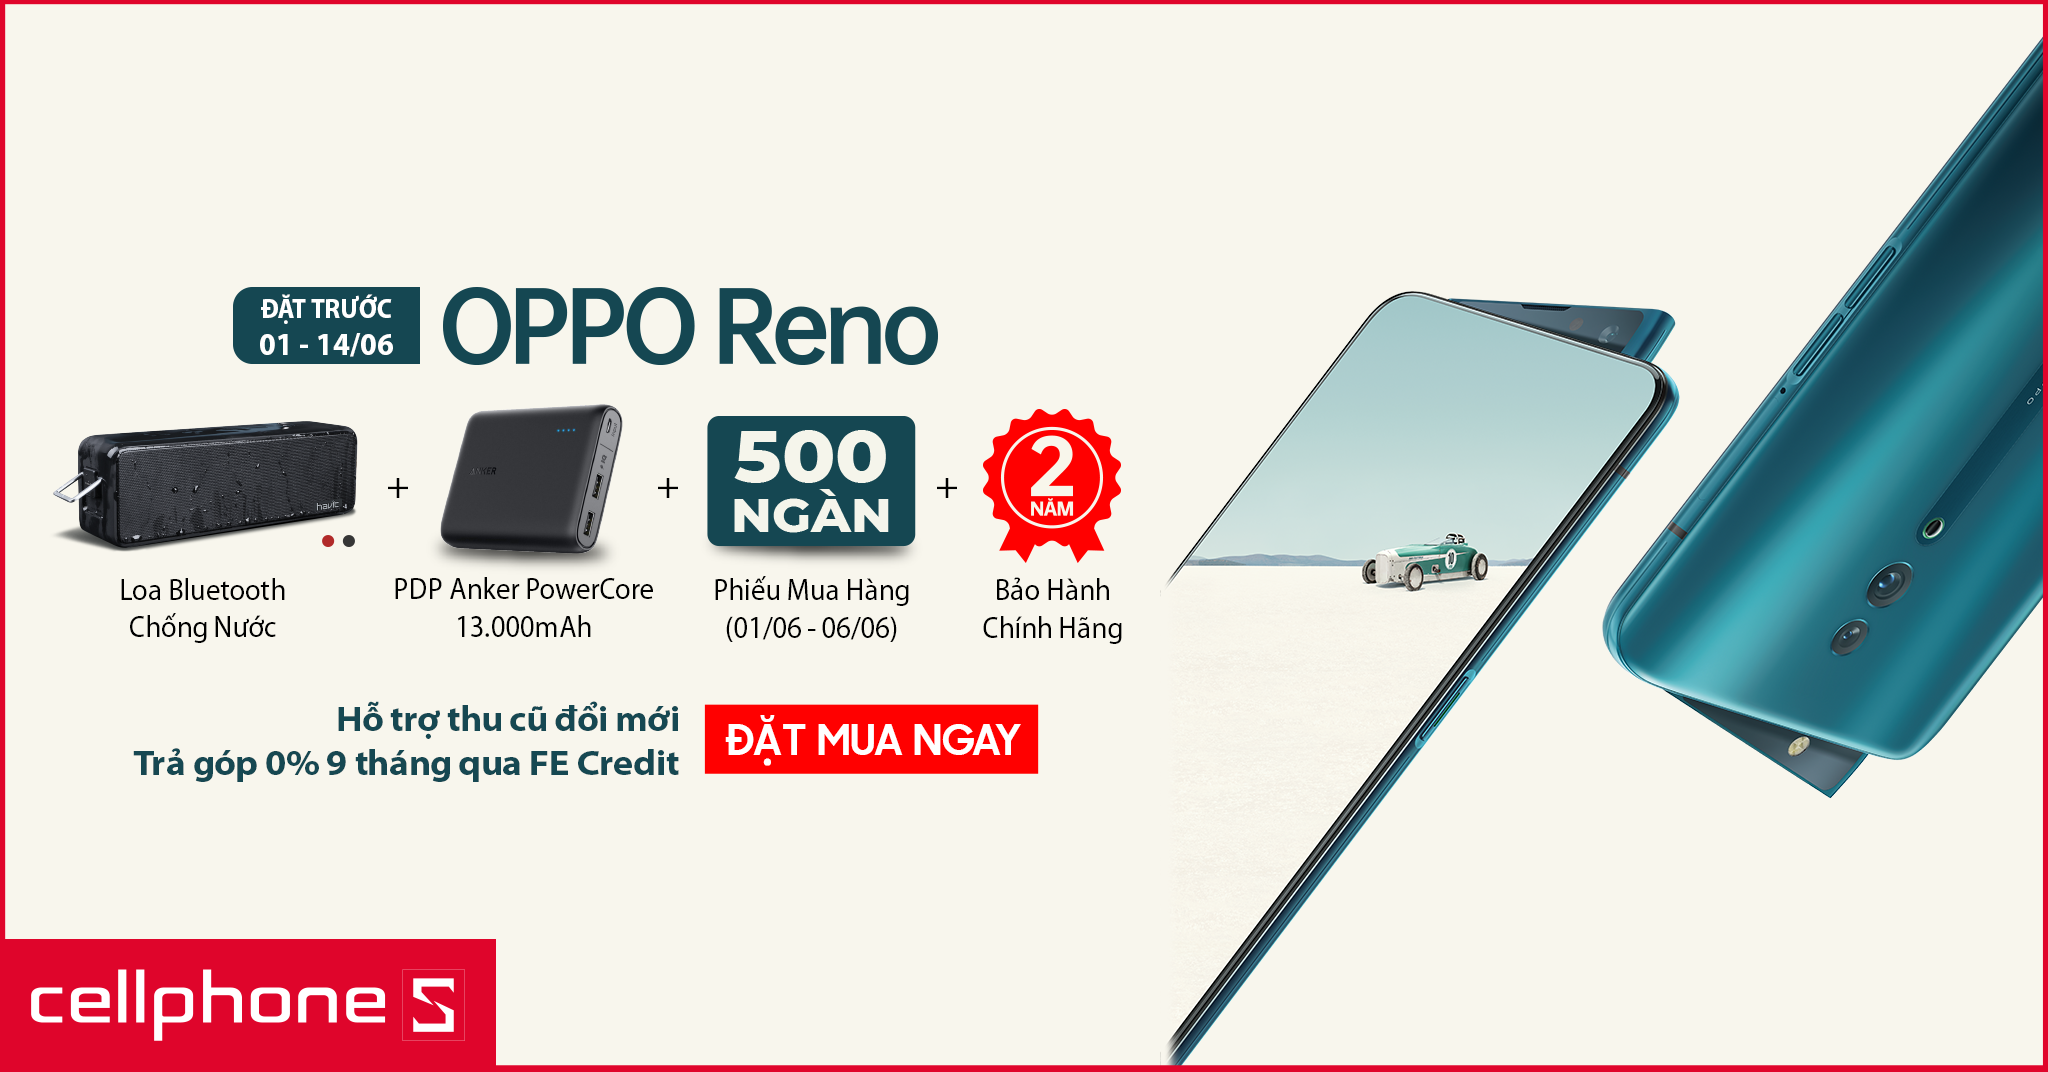 Sforum - Latest technology information oppo-reno-2048x1072 Advance OPPO Reno today, get 2-year warranty and gift worth millions of VND